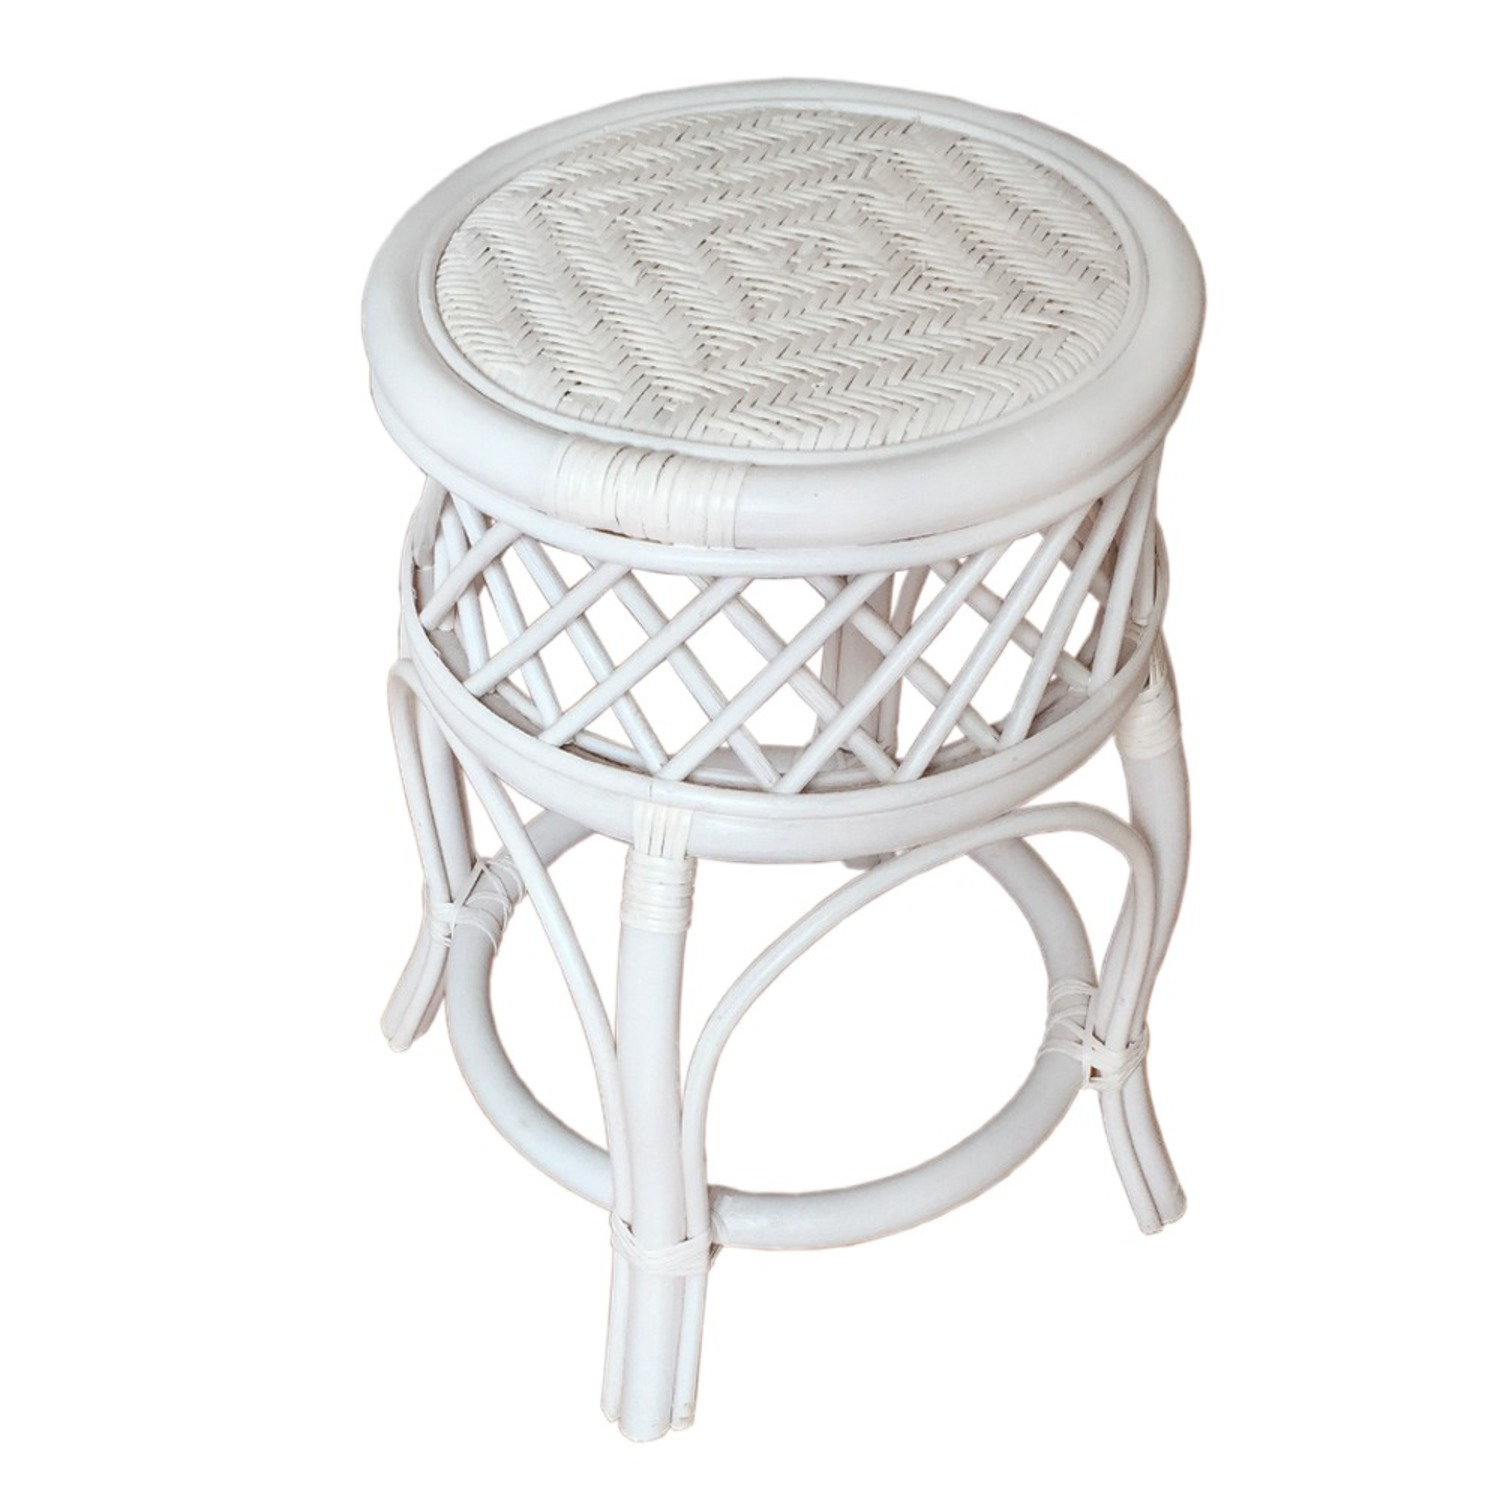 Mary Round White Solid Rattan Stool - image-1